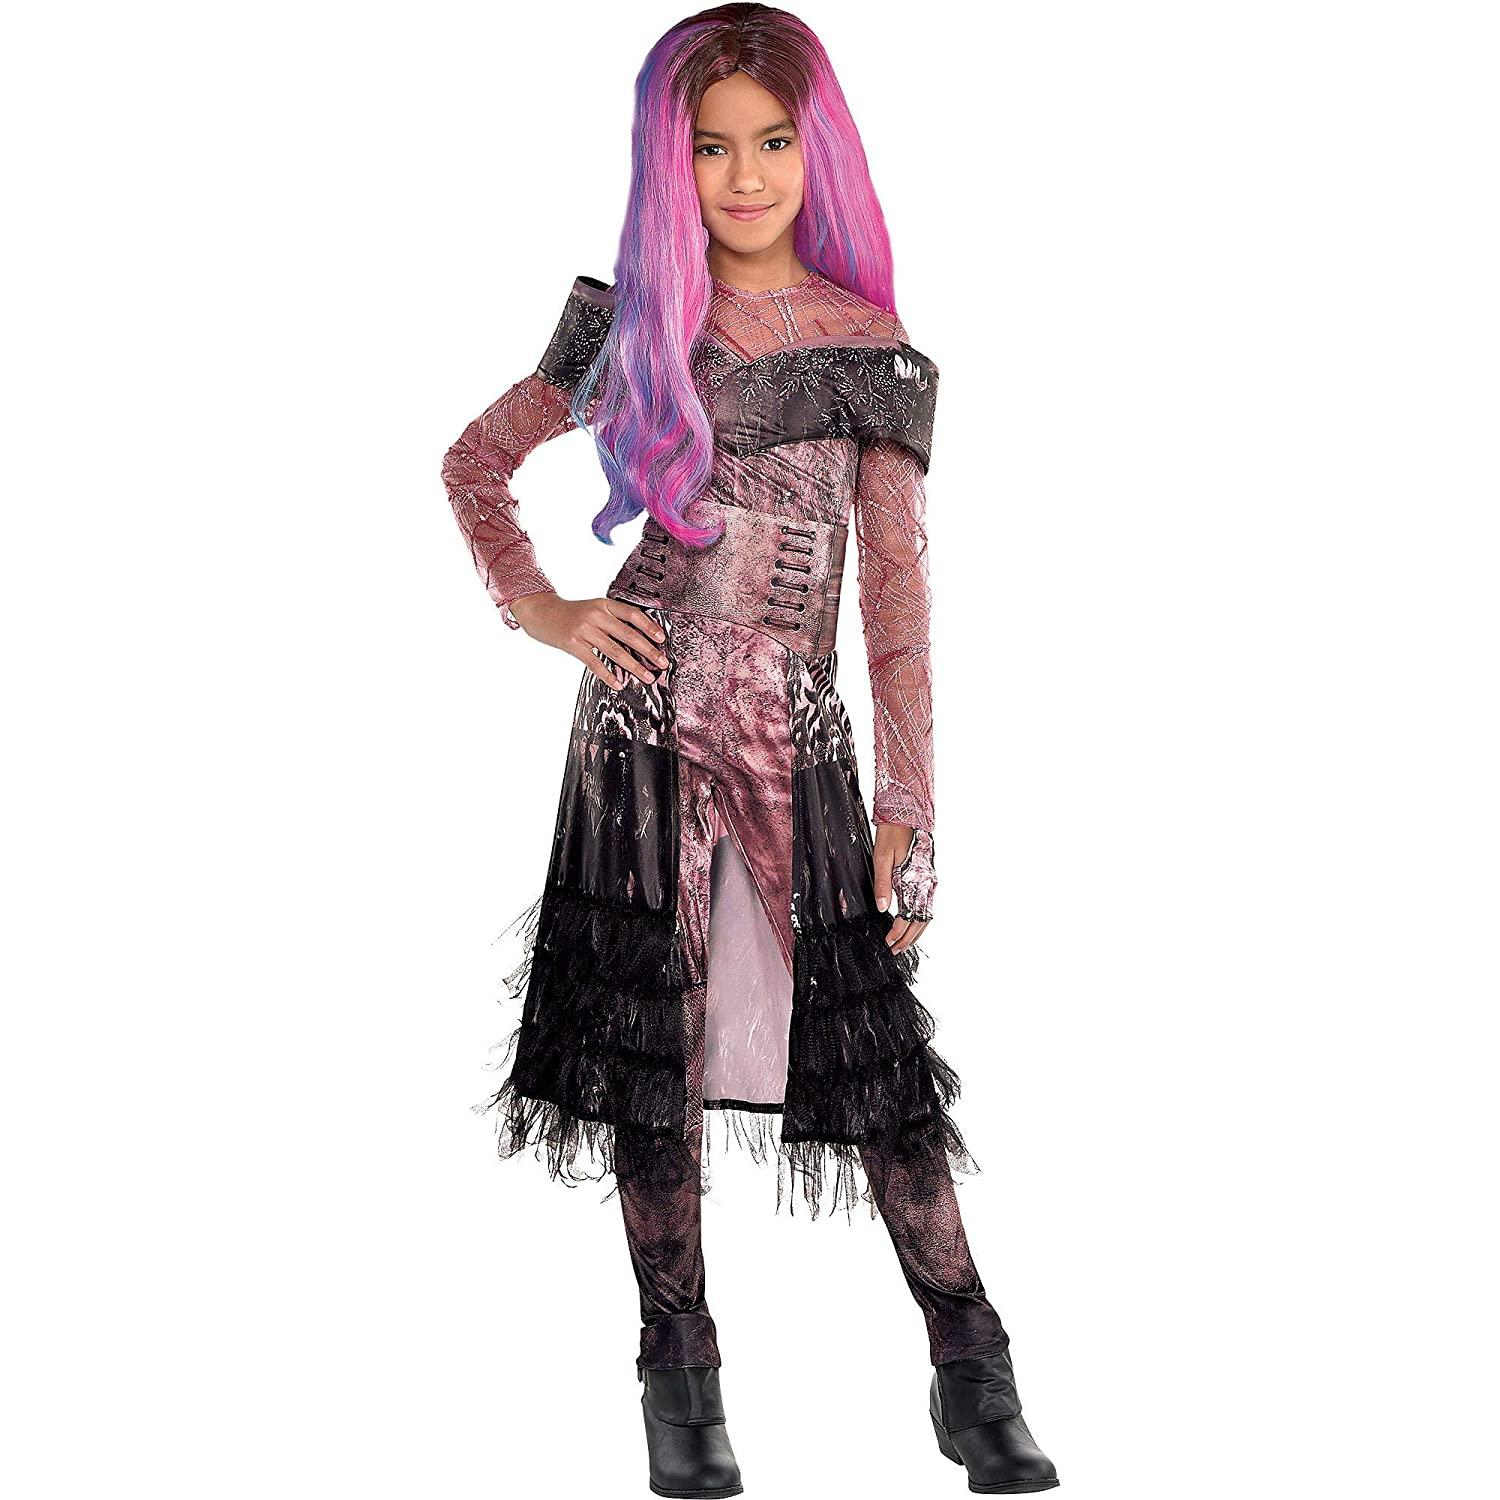 Party City Audrey Halloween Costume for Girls, Descendants 3, Medium,  Includes Accessories